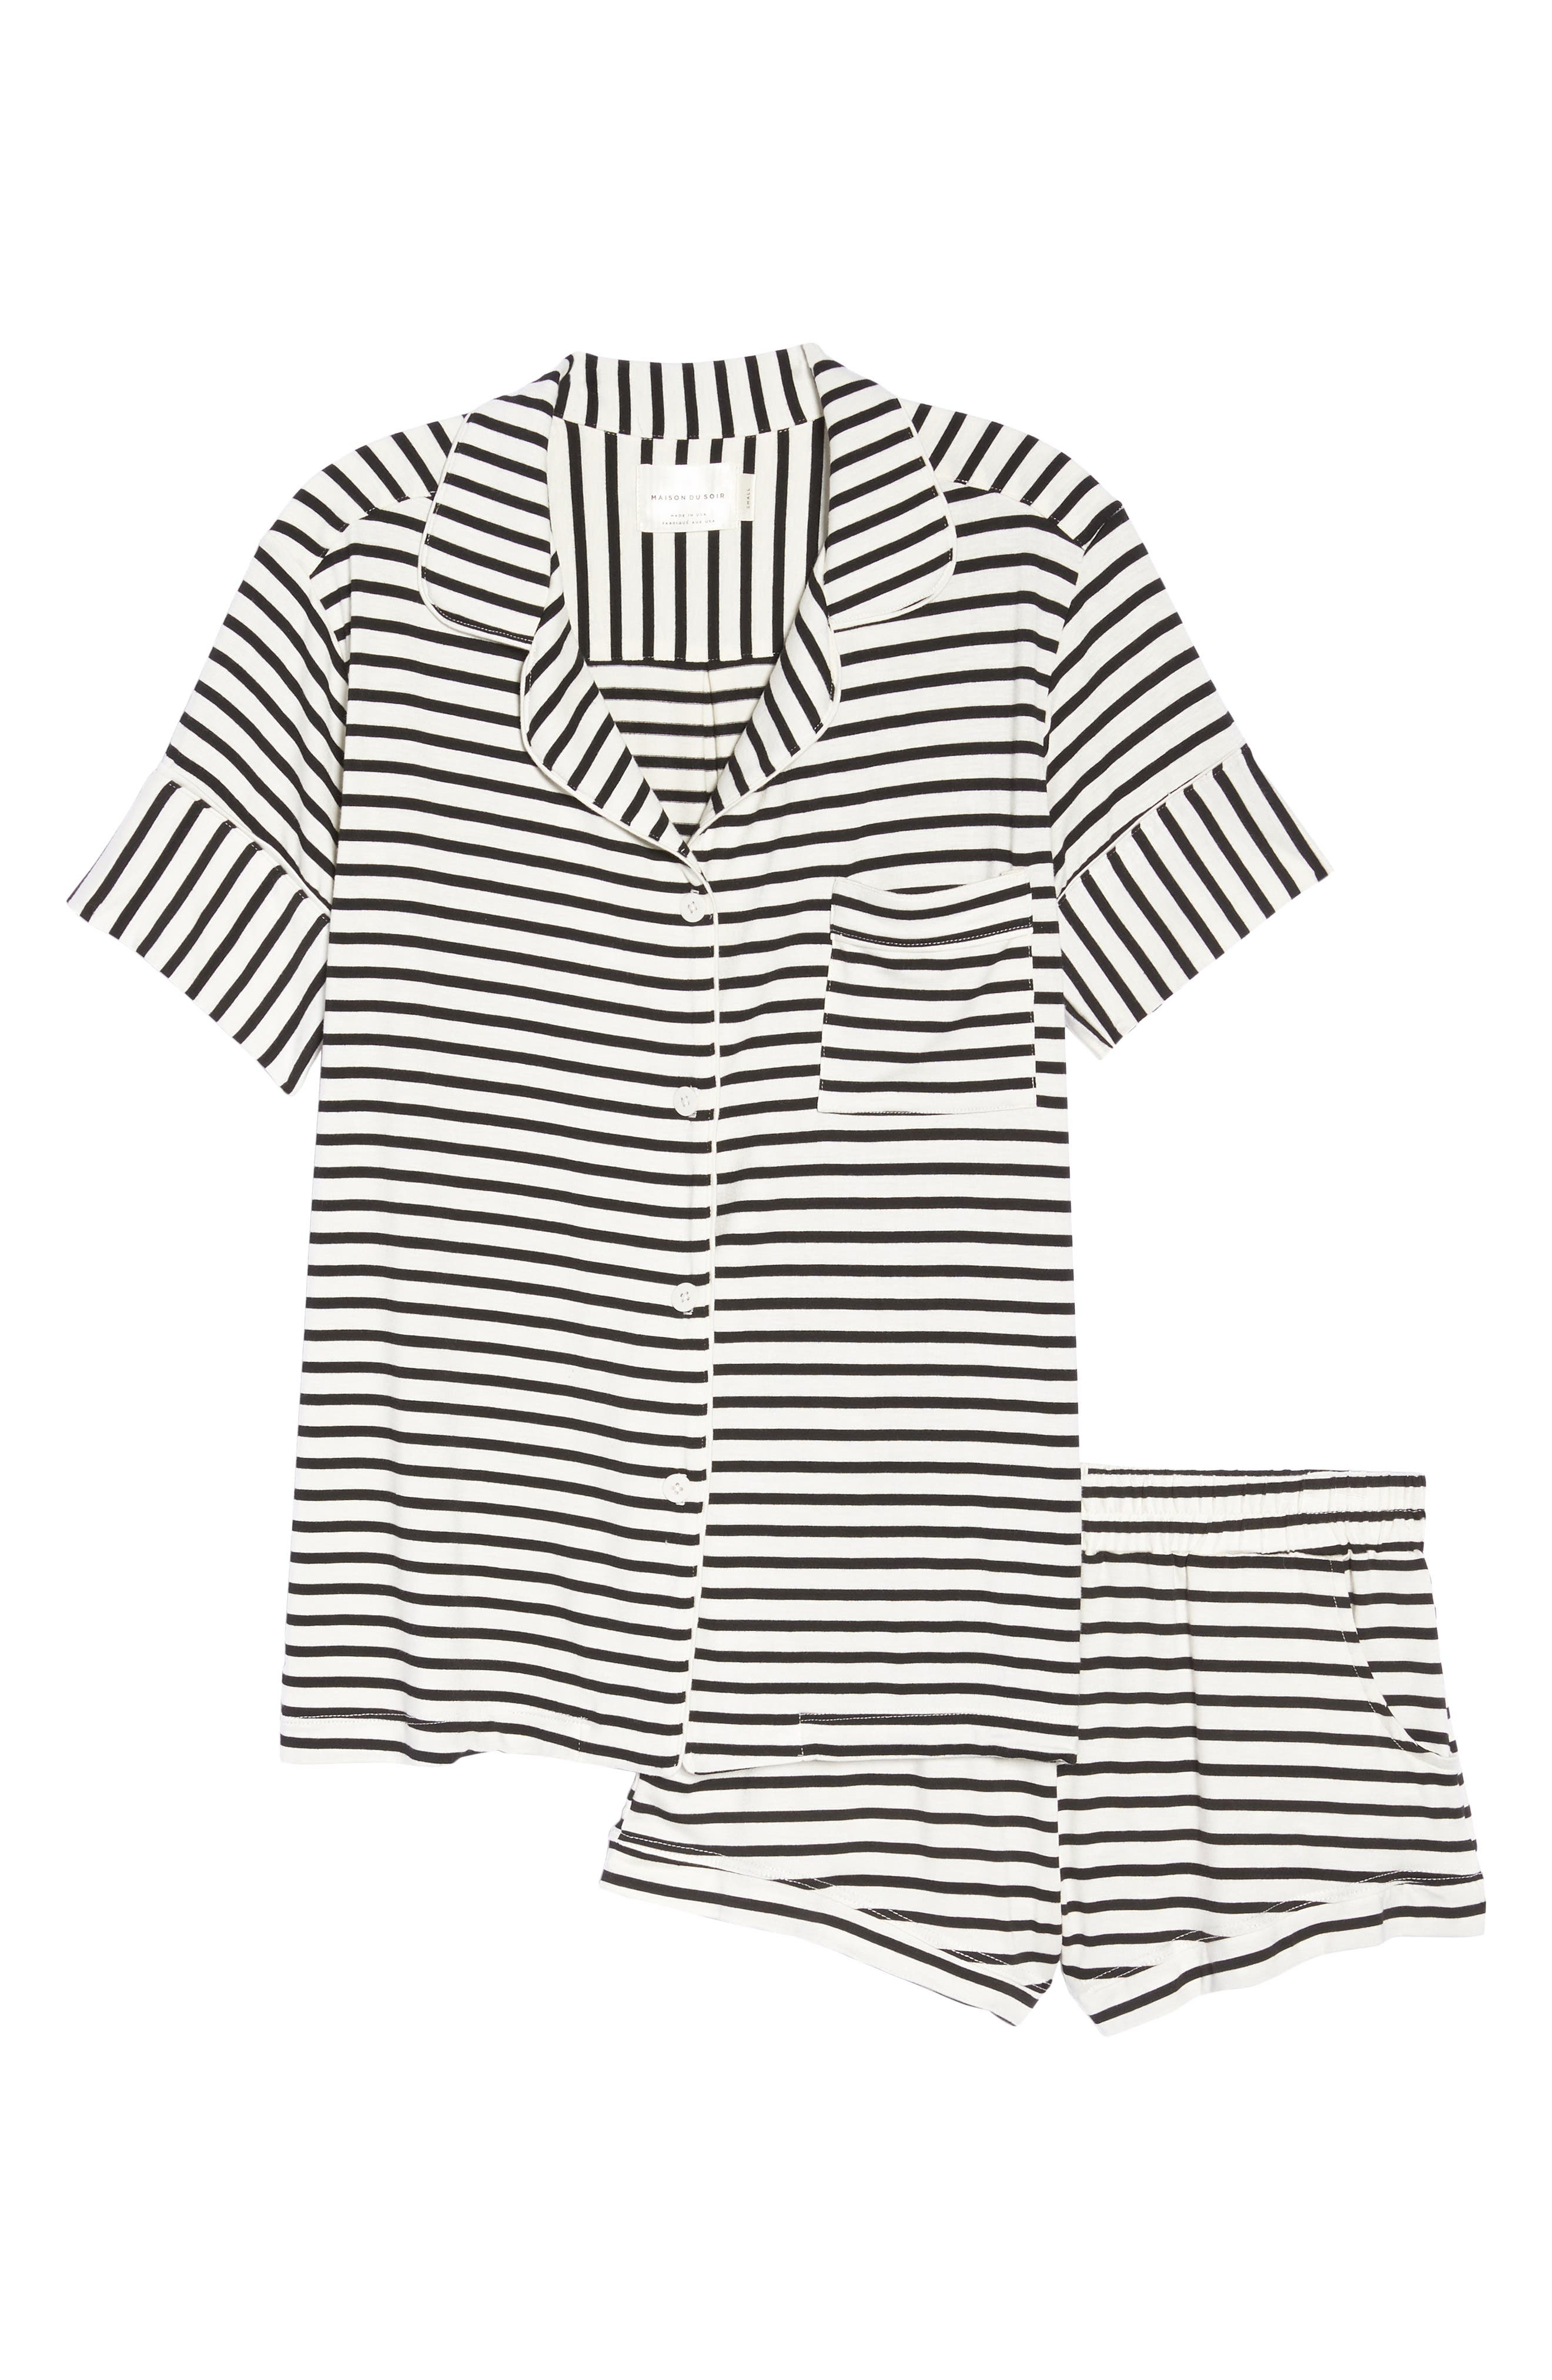 Monaco Short Pajamas,                             Alternate thumbnail 6, color,                             PEARL STRIPE